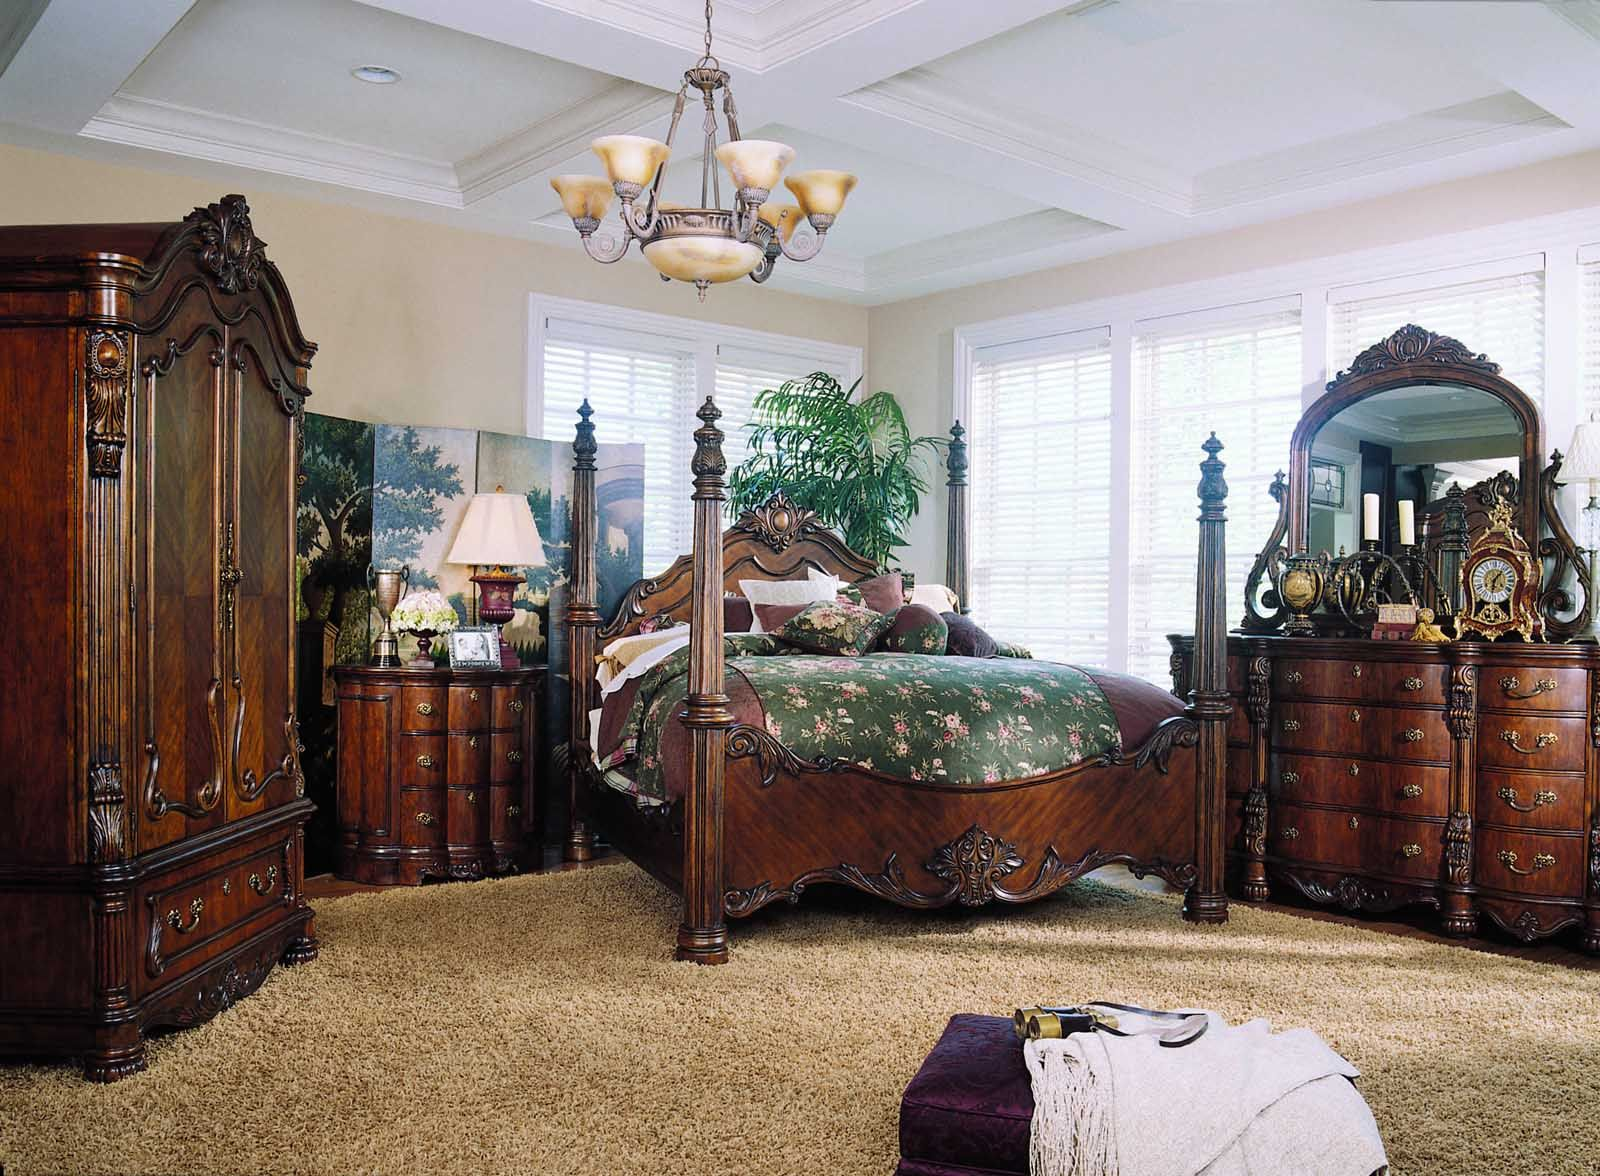 Edwardian Poster Bedroom Set By Pulaski Furniture At Wholesale Furniture  Brokers Canada. This Luxurious Bedroom Set Includes A Queen Poster Bed,  Dresser, ...